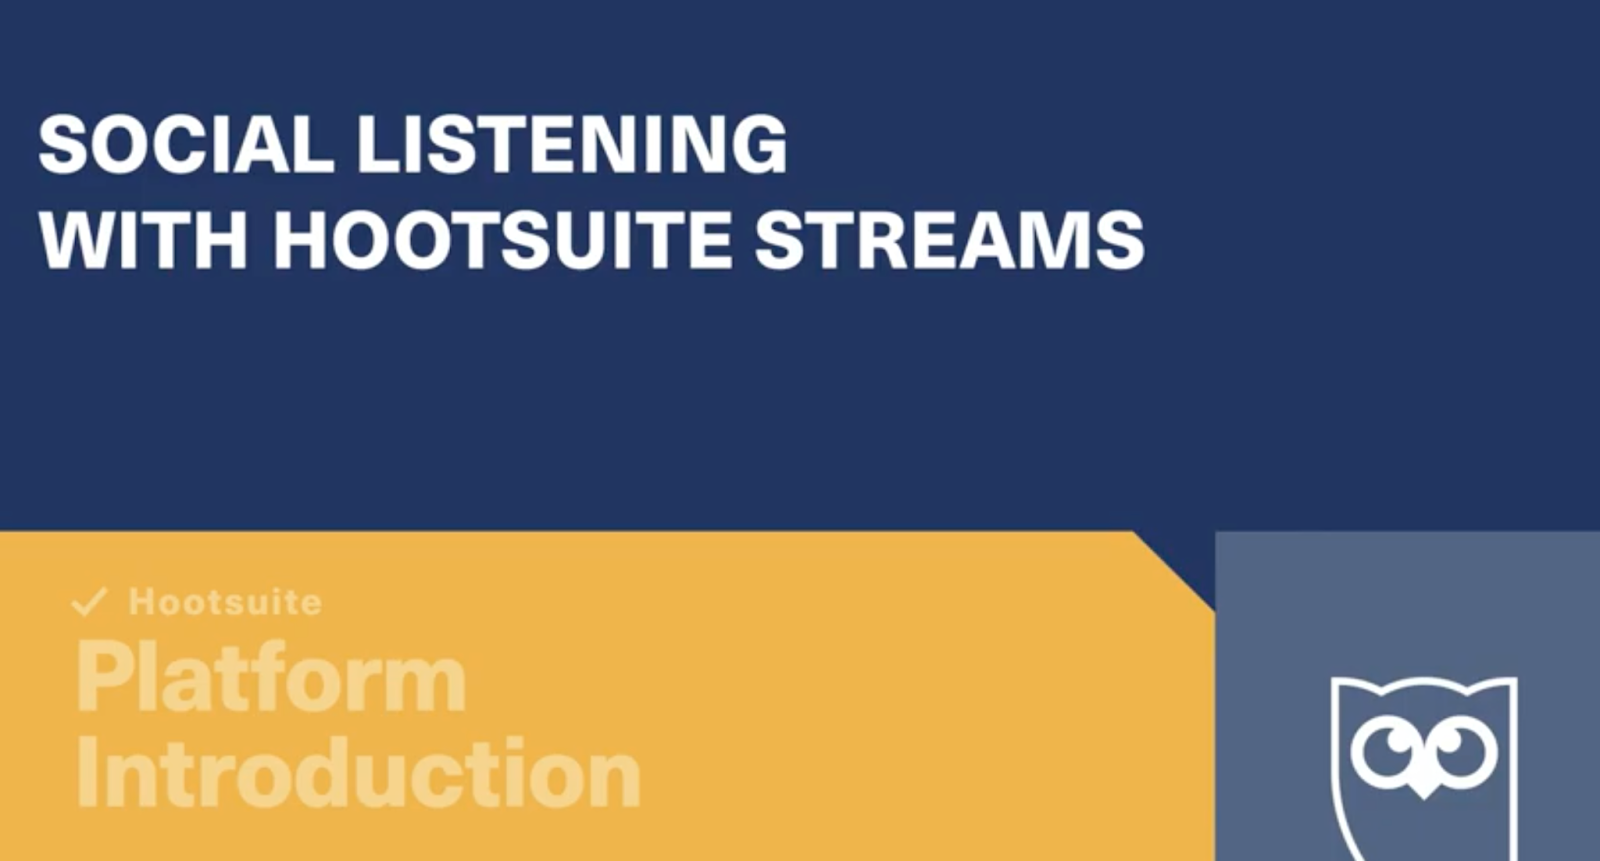 Hootsuite's Social Listening with Hootsuite Streams